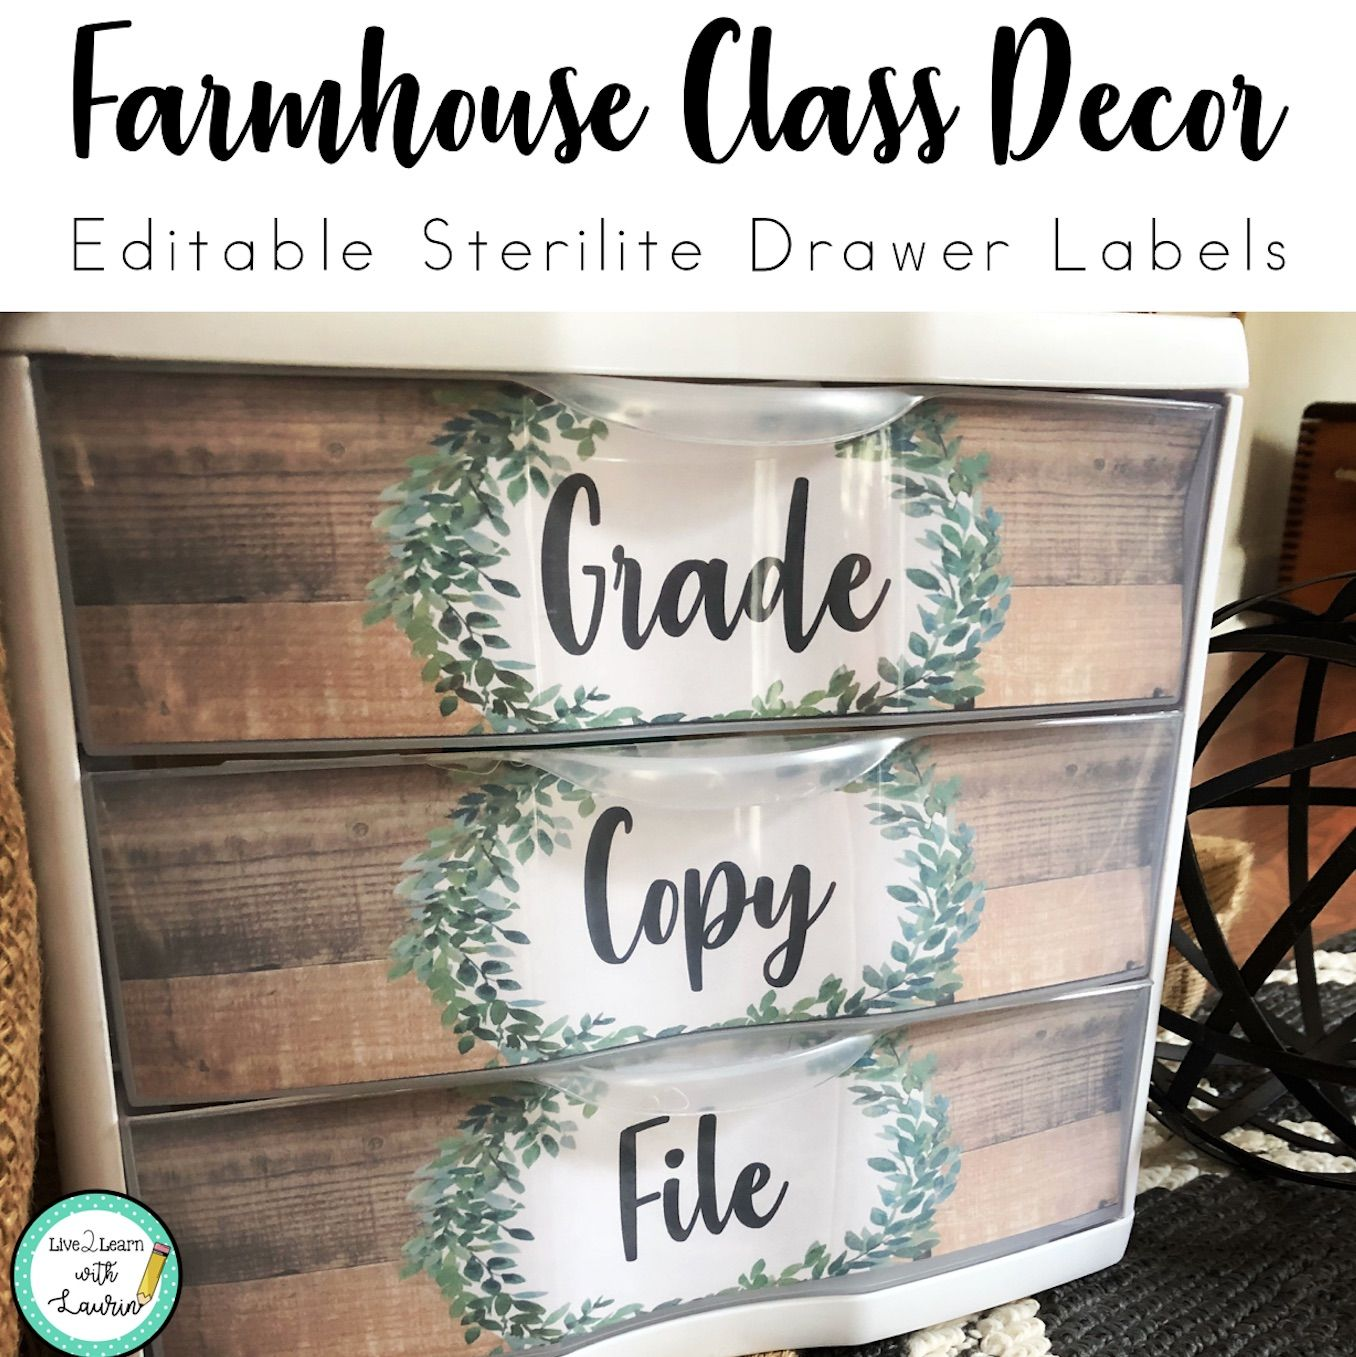 Farmhouse Classroom Decor - Editable Sterilite Drawer Labels